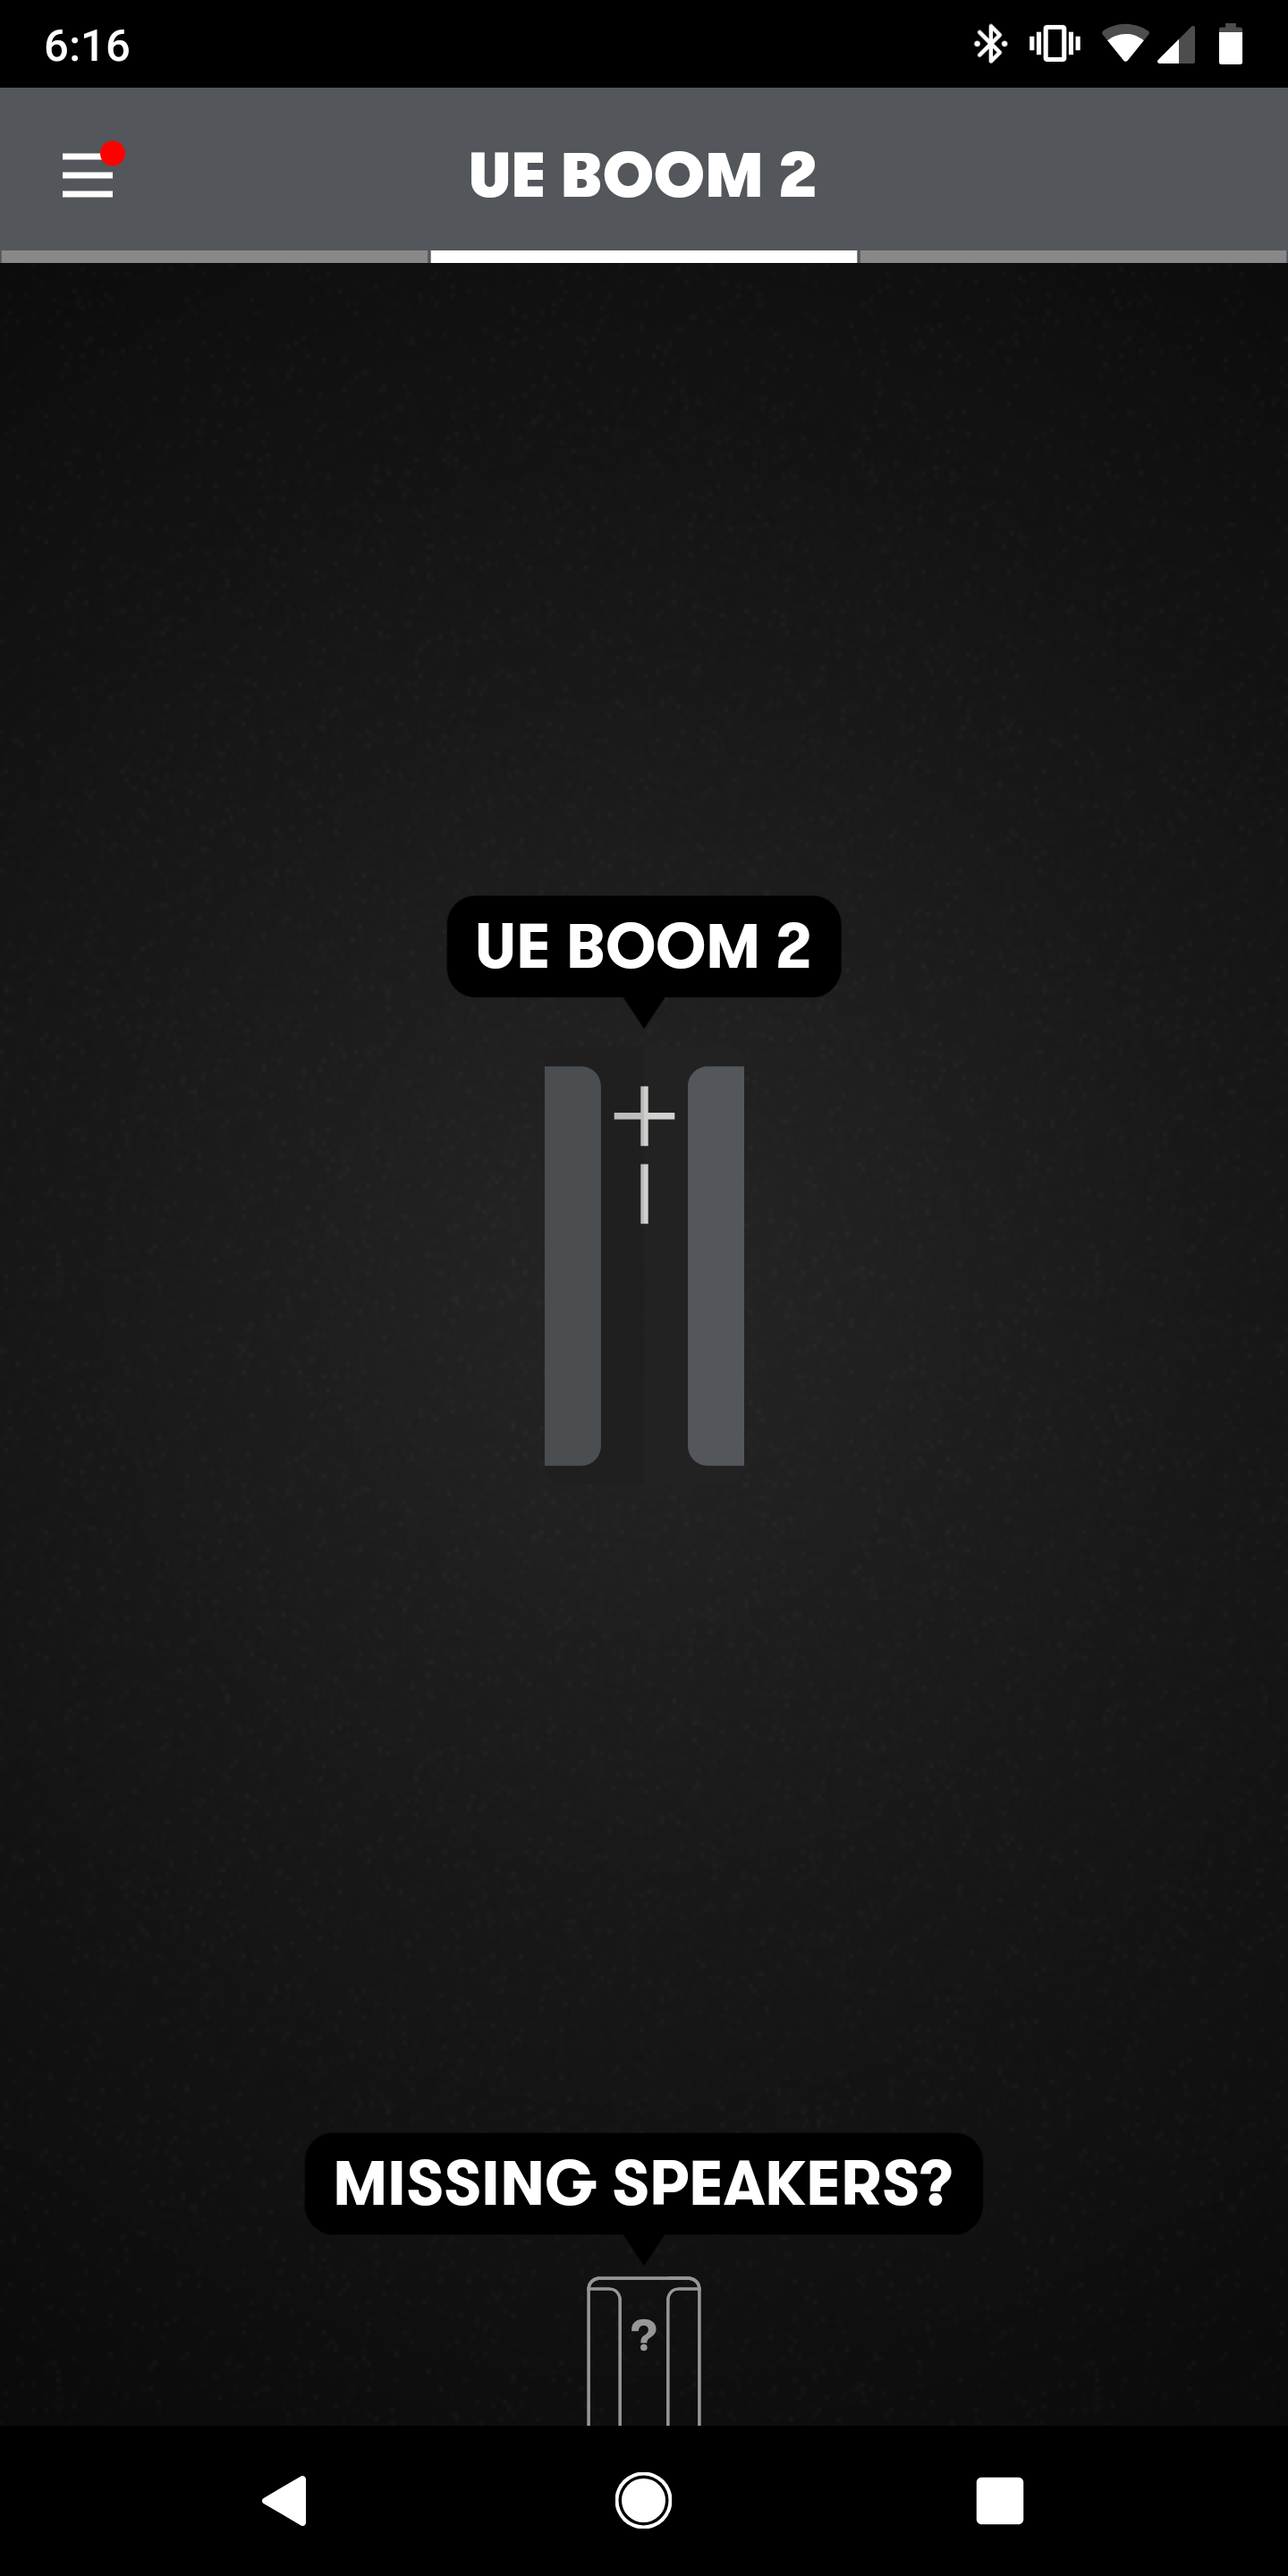 Update: Statement] The latest Ultimate Ears BOOM app update removes